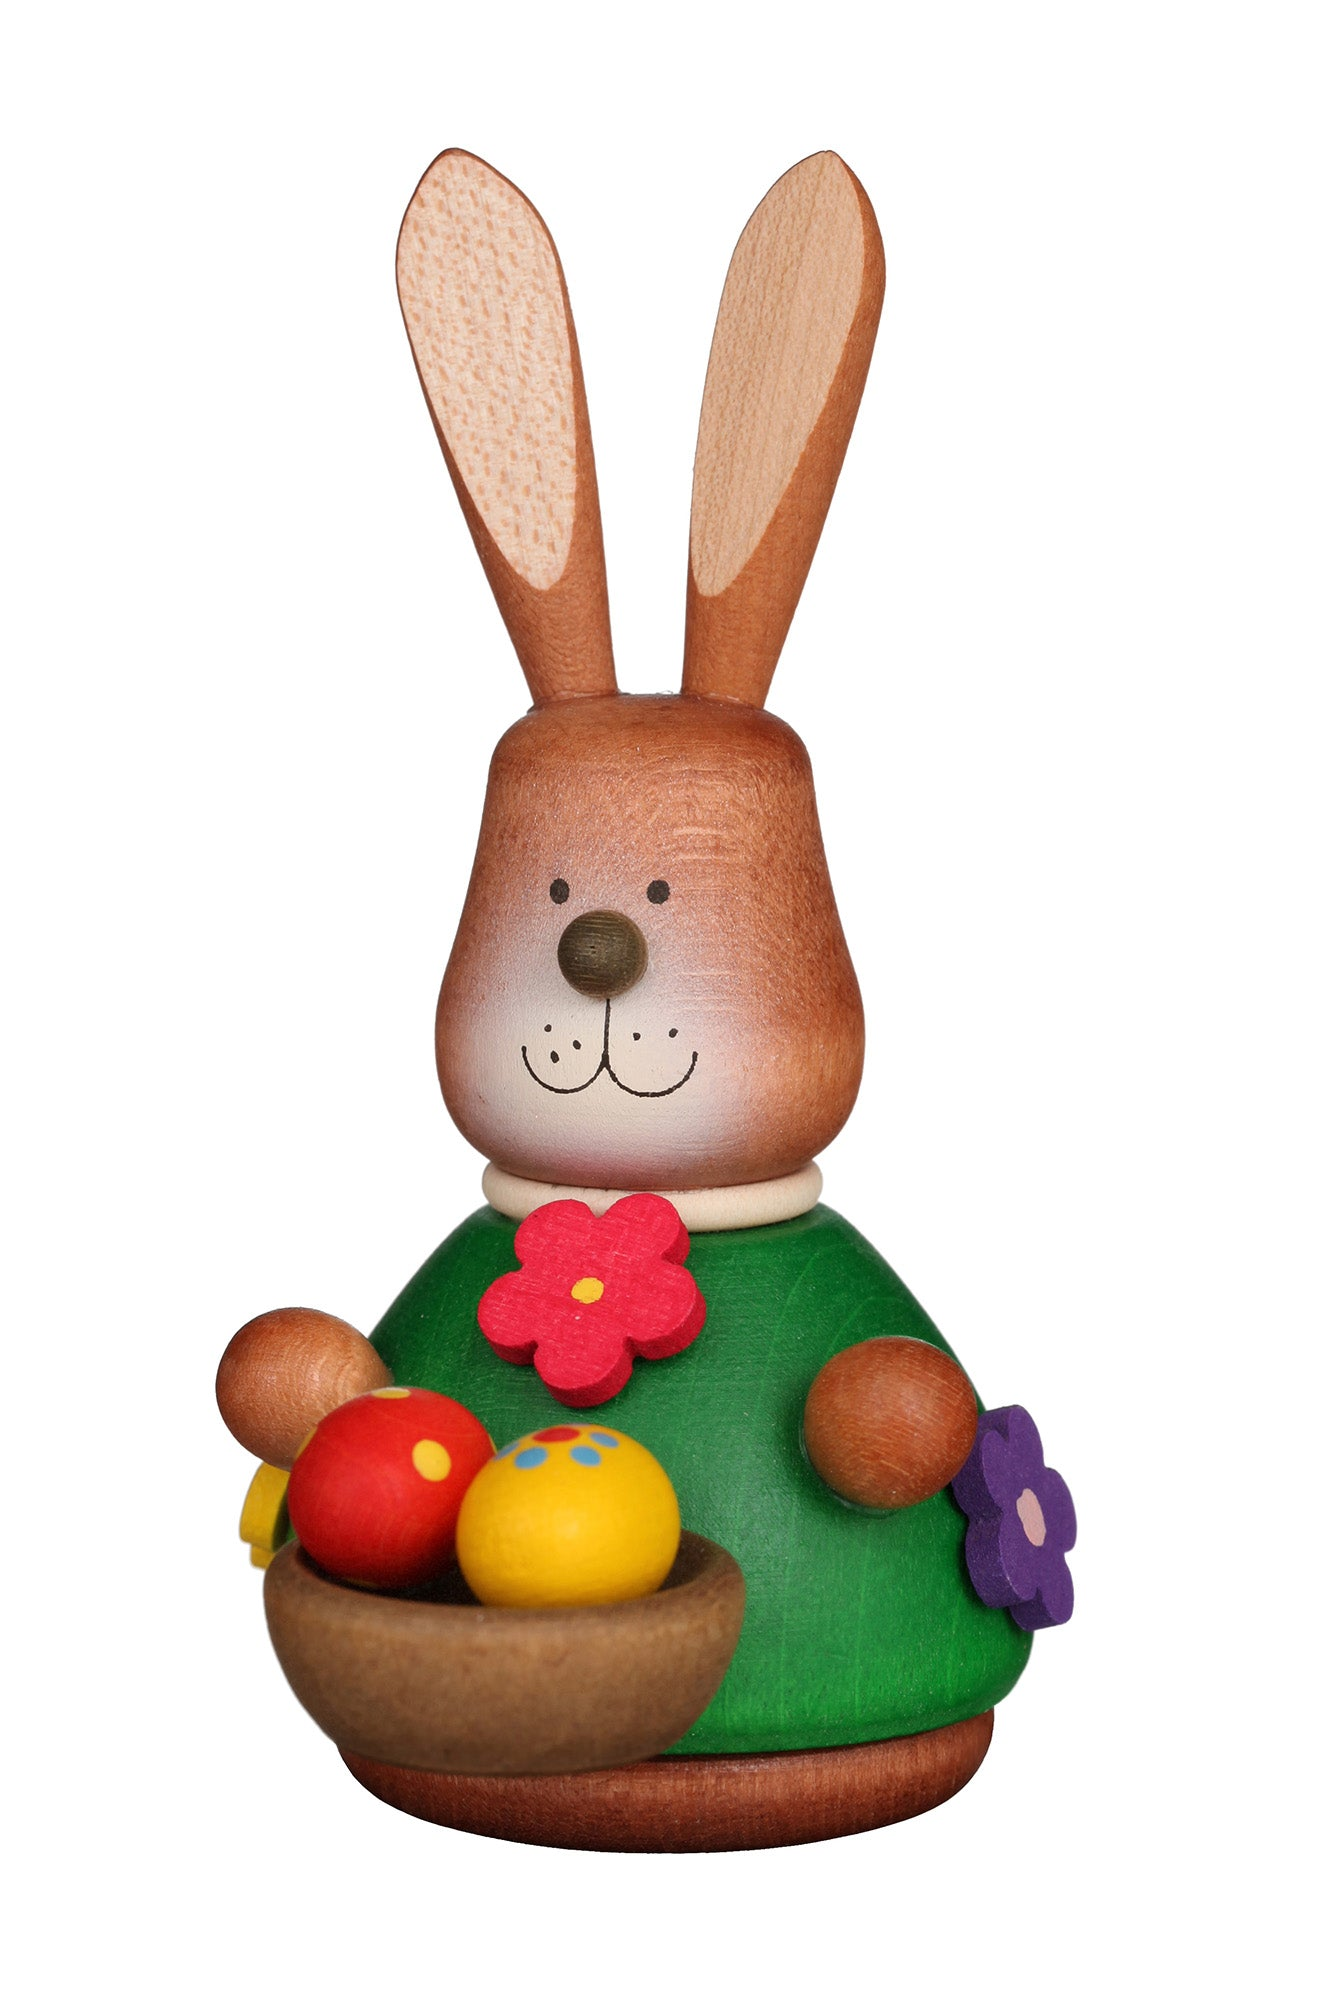 Easter bunny wobble figure - Colourful Basket of Eggs